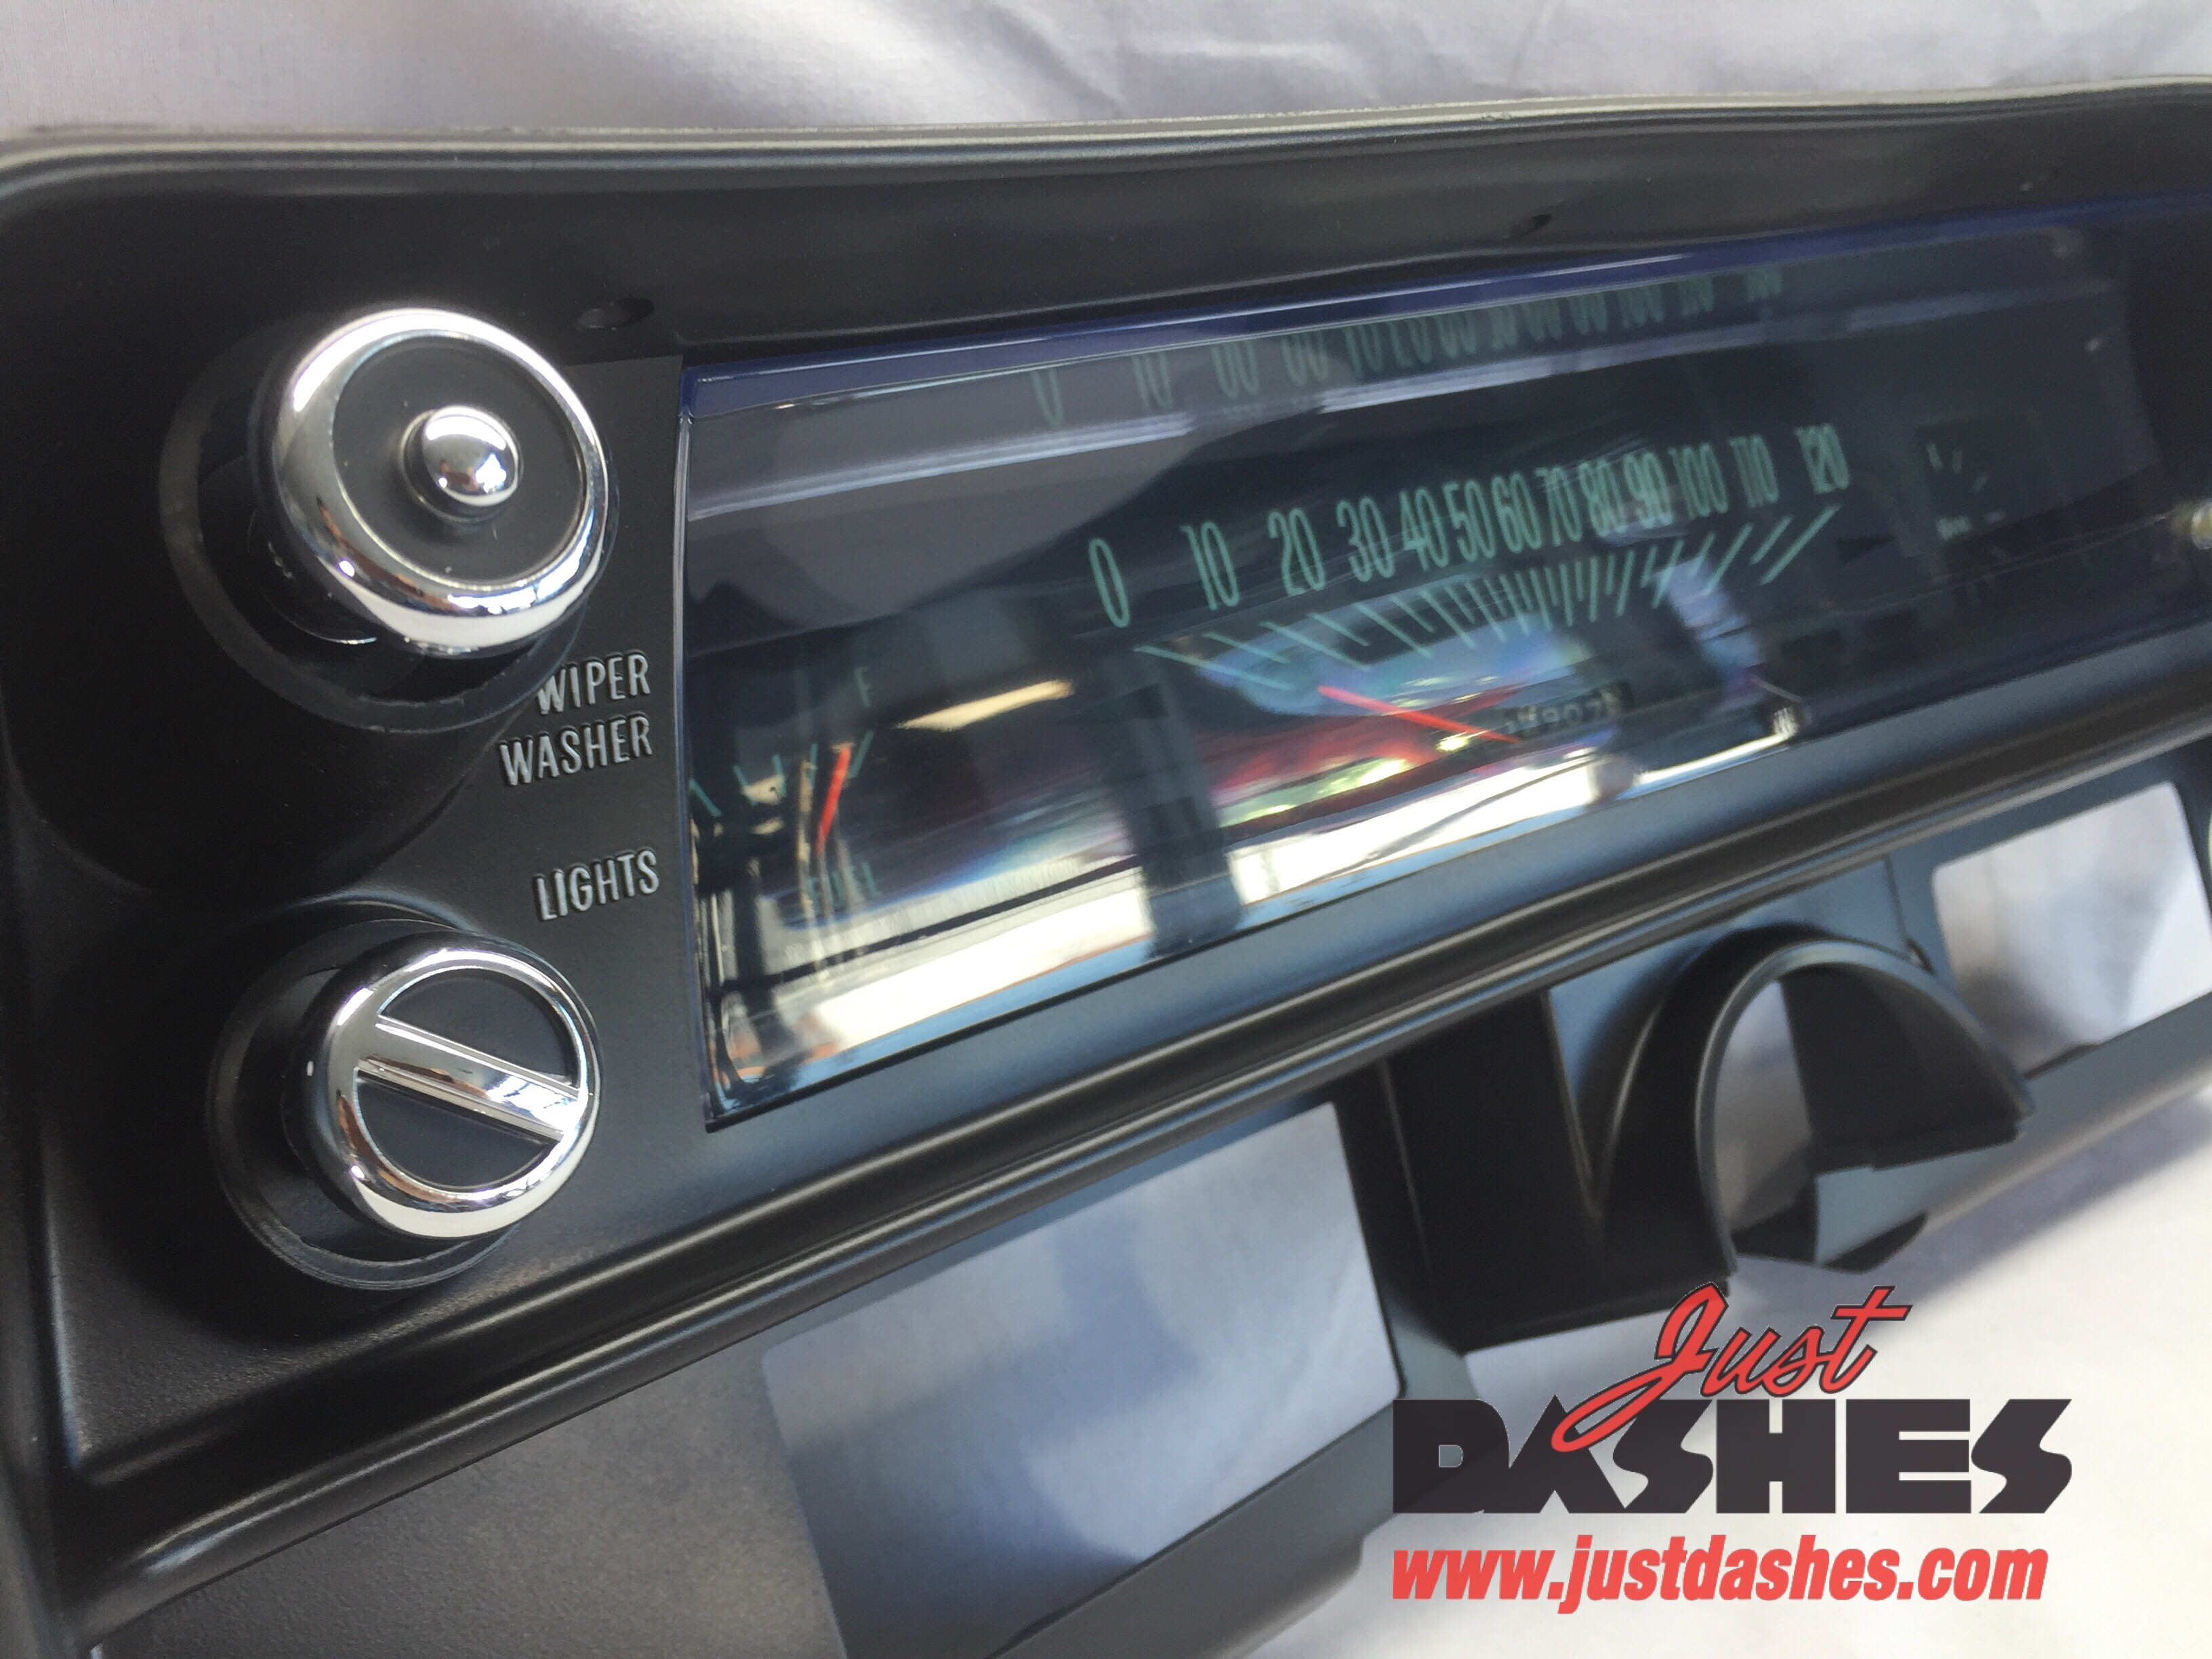 1968 Chevy Nova Instrument Cluster Just Dashes Truck Gauge Rechromed Plastic Knobs Silkscreened Artwork Polished Lens Detailed Housing